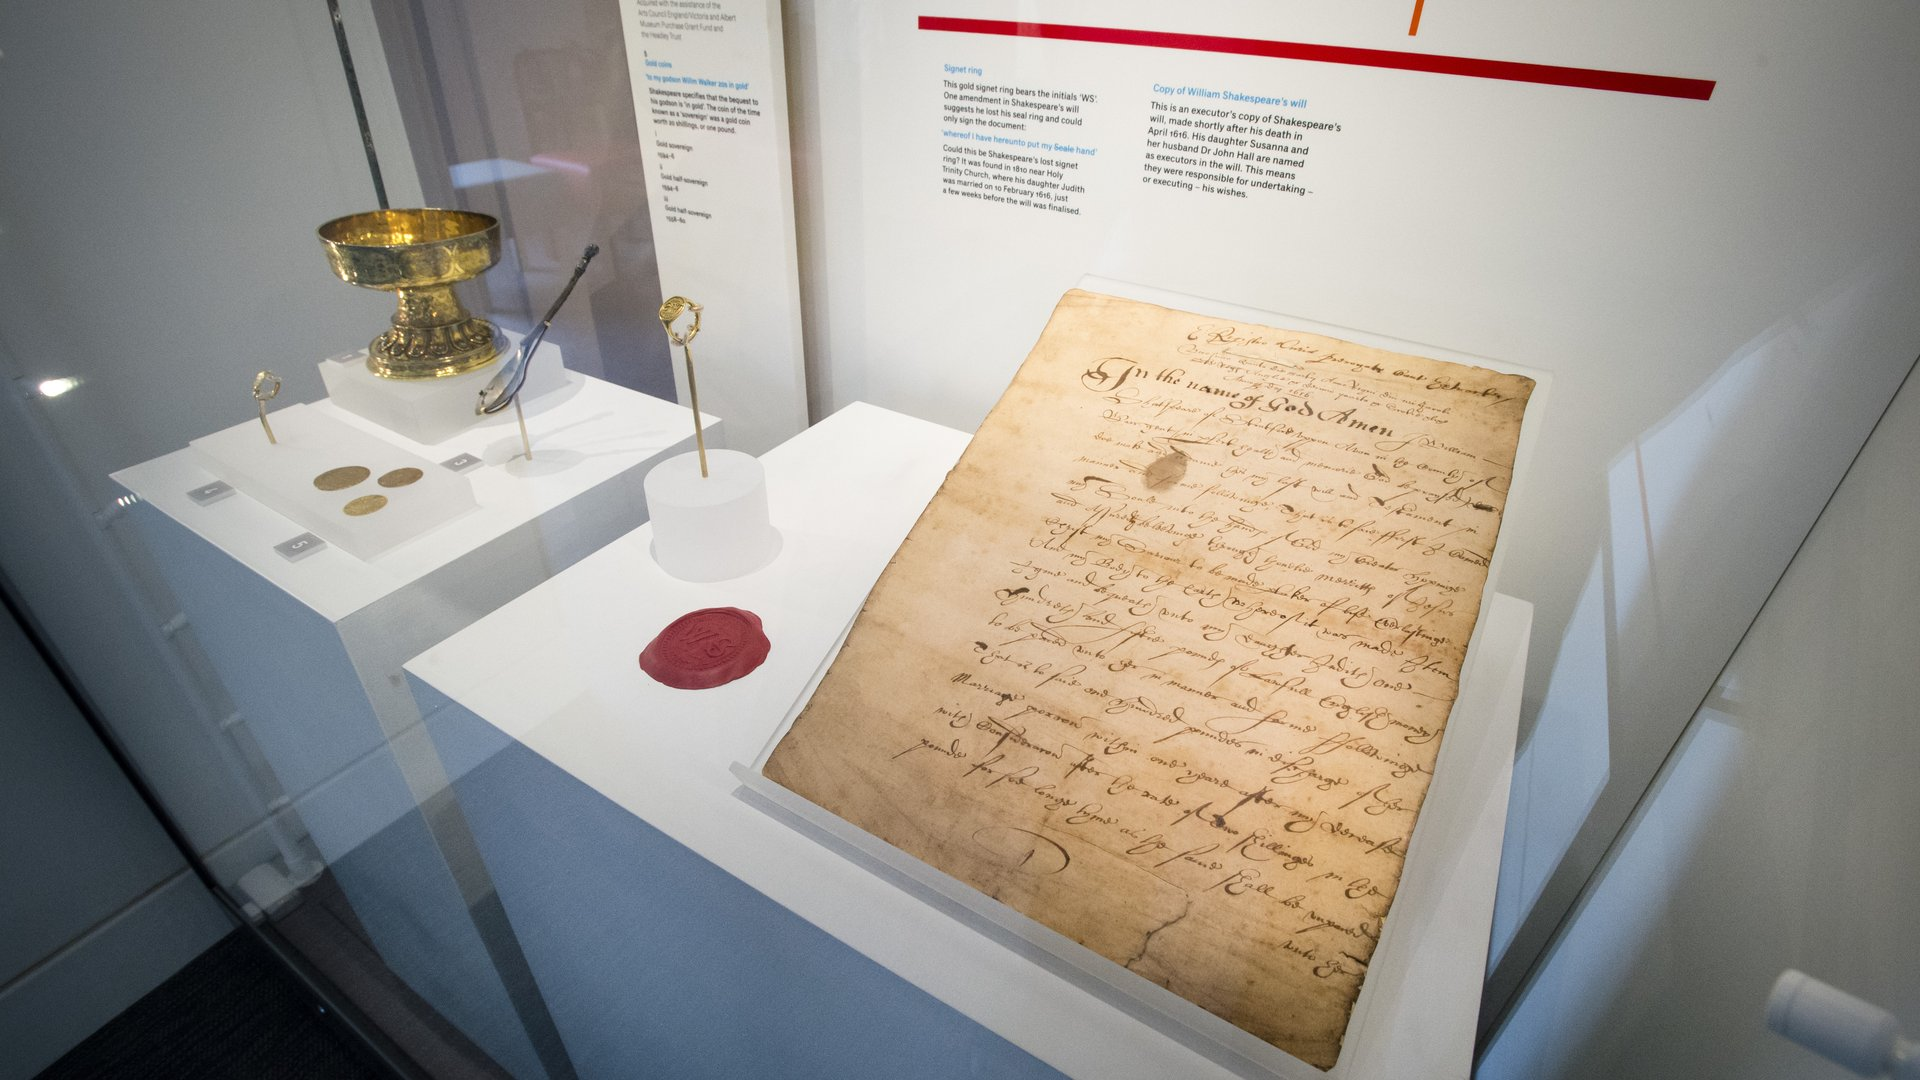 Copy of Shakespeare's Will